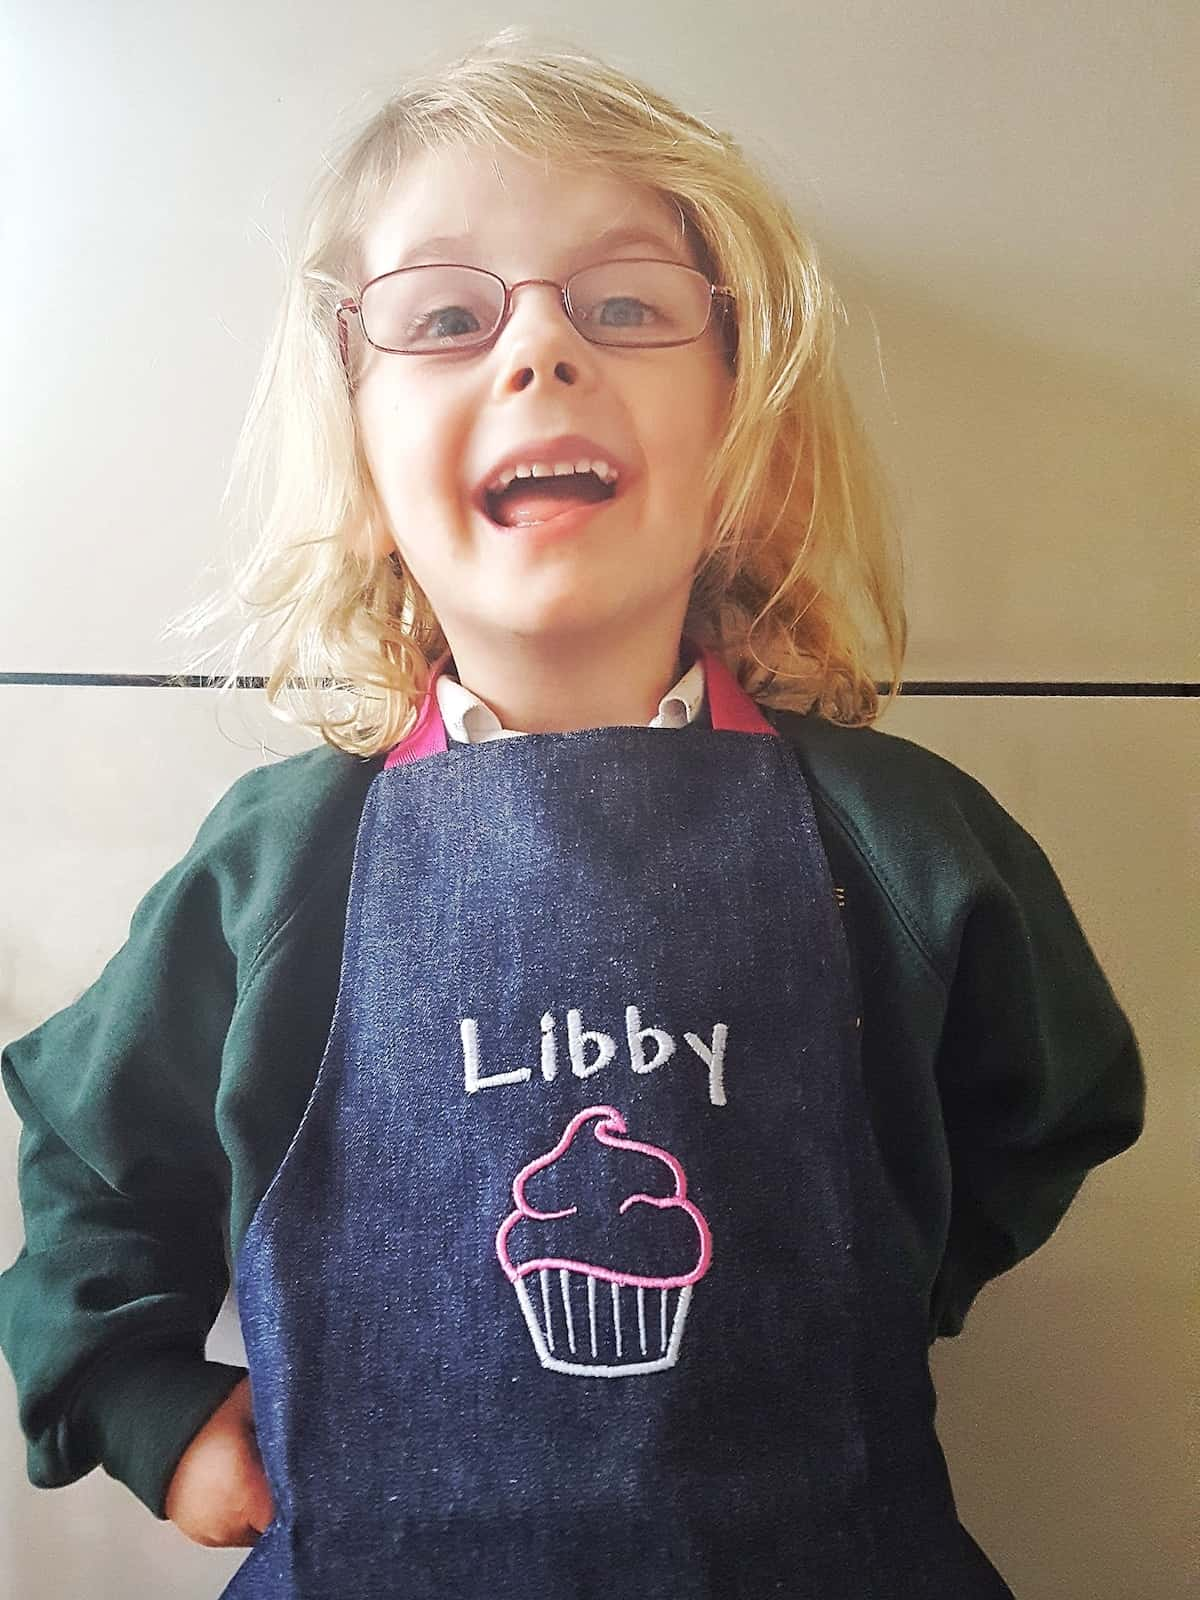 Arty apple focus is on quality, affordability and the personal touch that comes with each item being specially made for the child who will receive it. We have reviewed the personalised girls' aprons and you have the chance to win one.